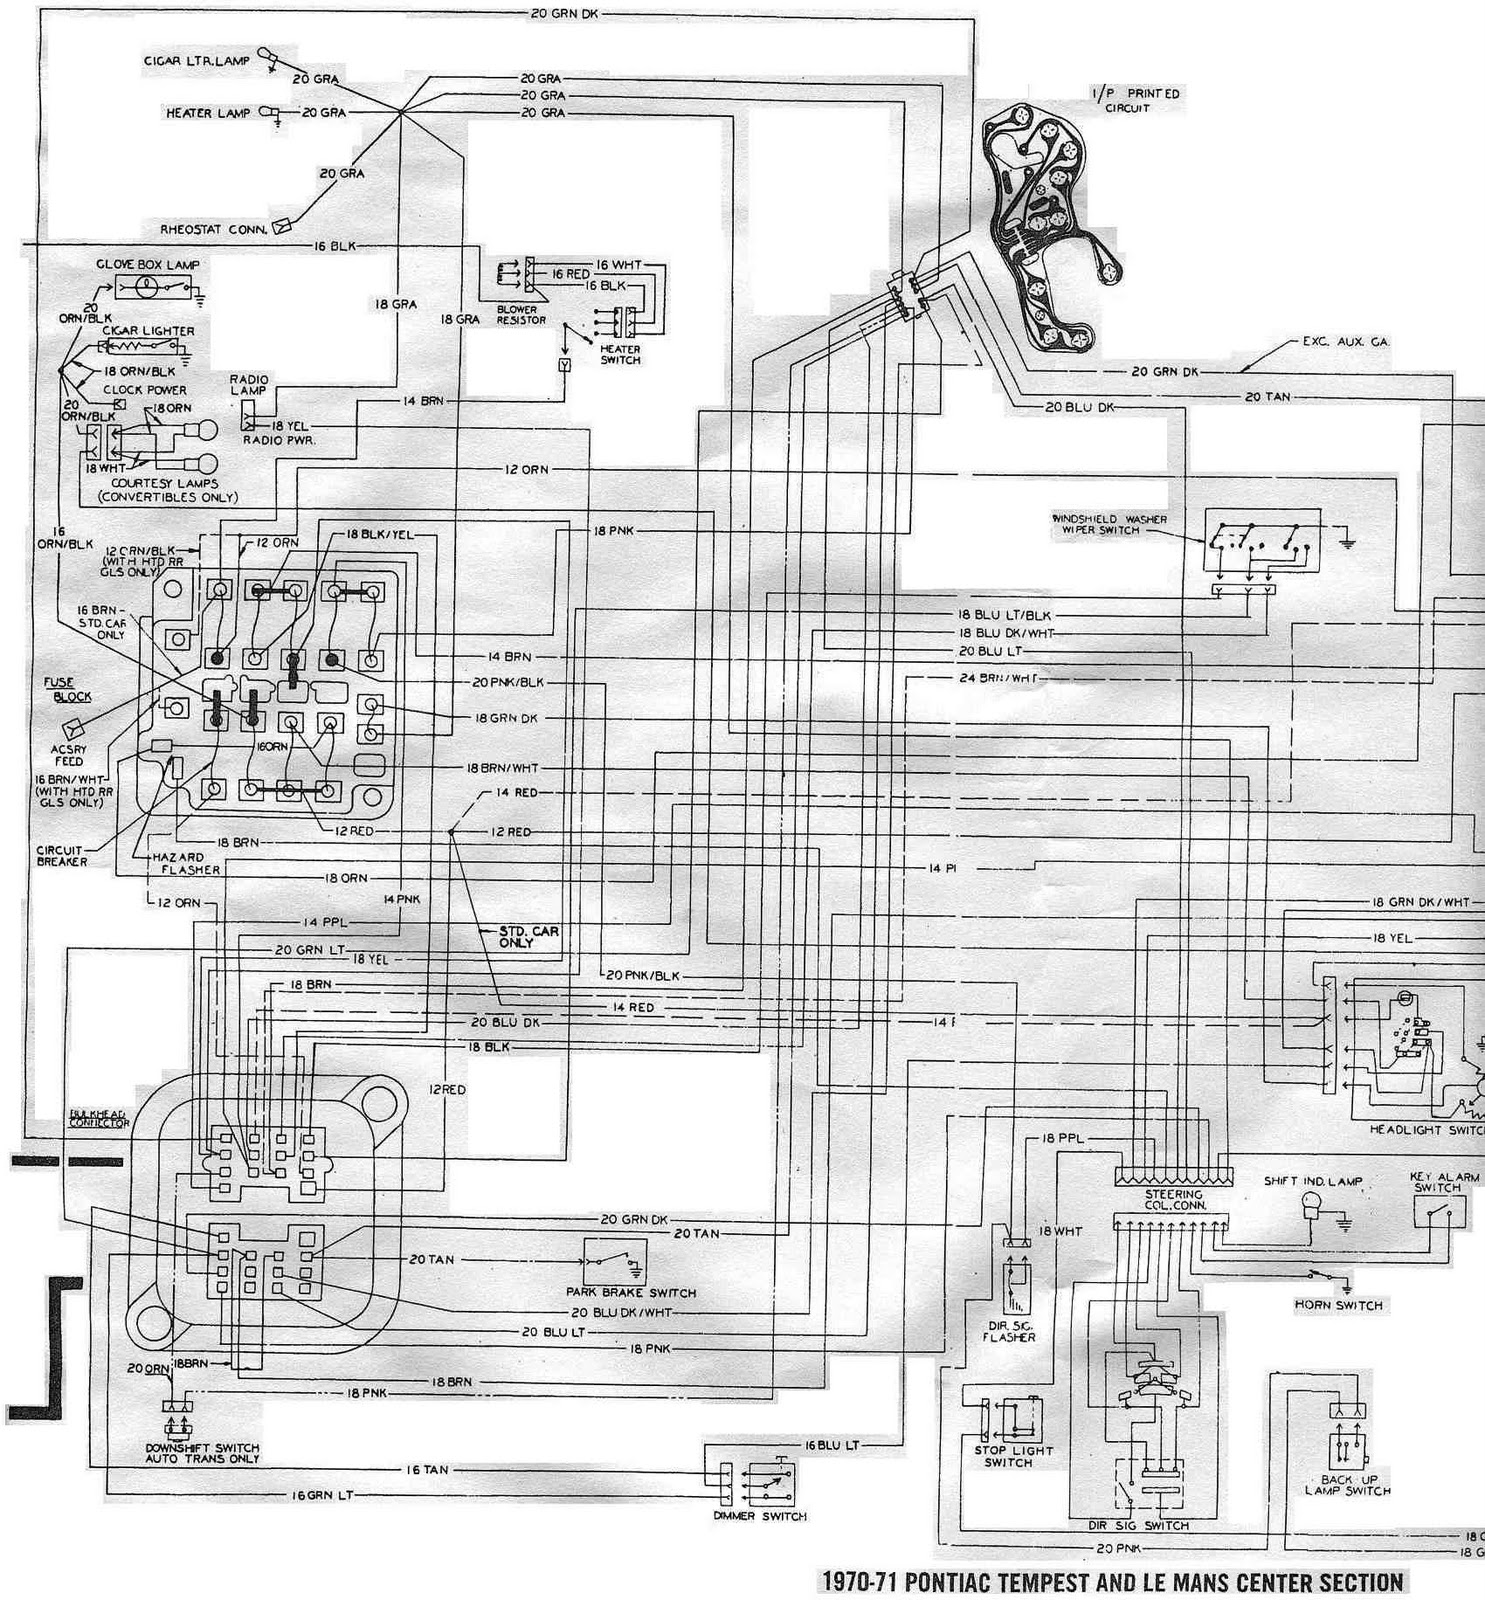 pontiac tempest and lemans 1970 1971 center section 1964 pontiac bonneville wiring diagram pontiac bonneville [ 1485 x 1600 Pixel ]